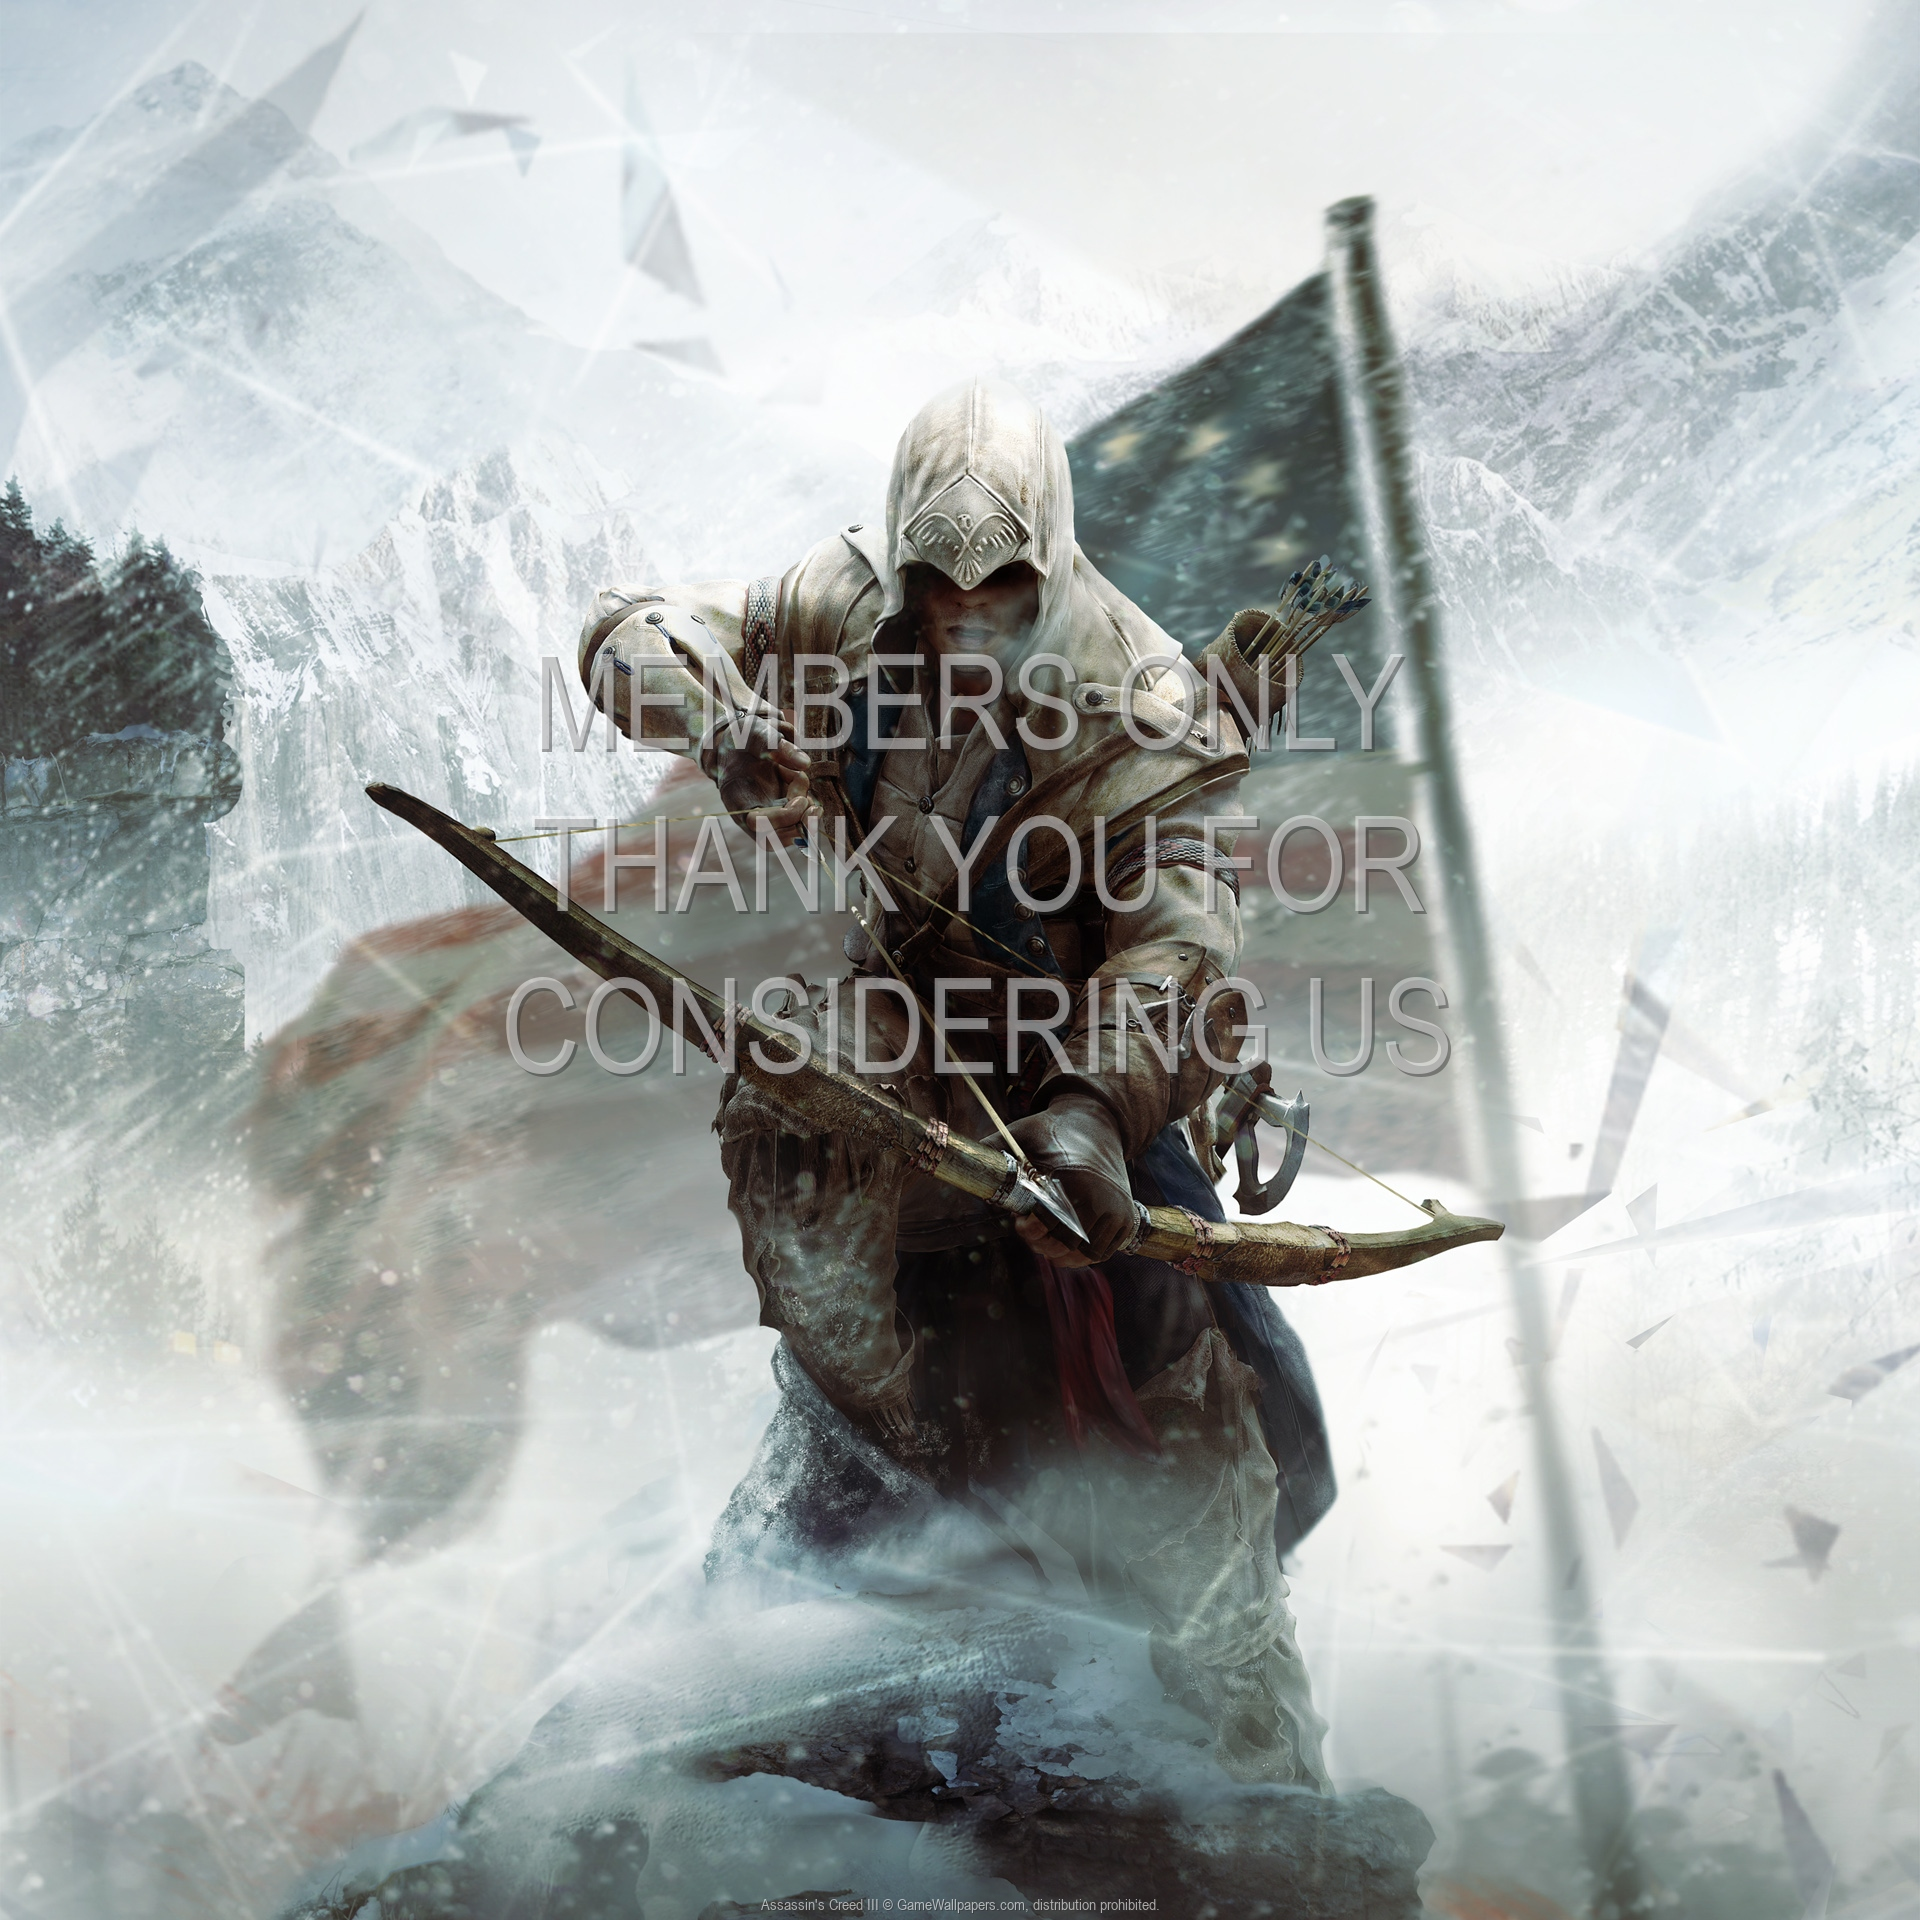 Assassin's Creed III 1920x1080 Mobile wallpaper or background 10